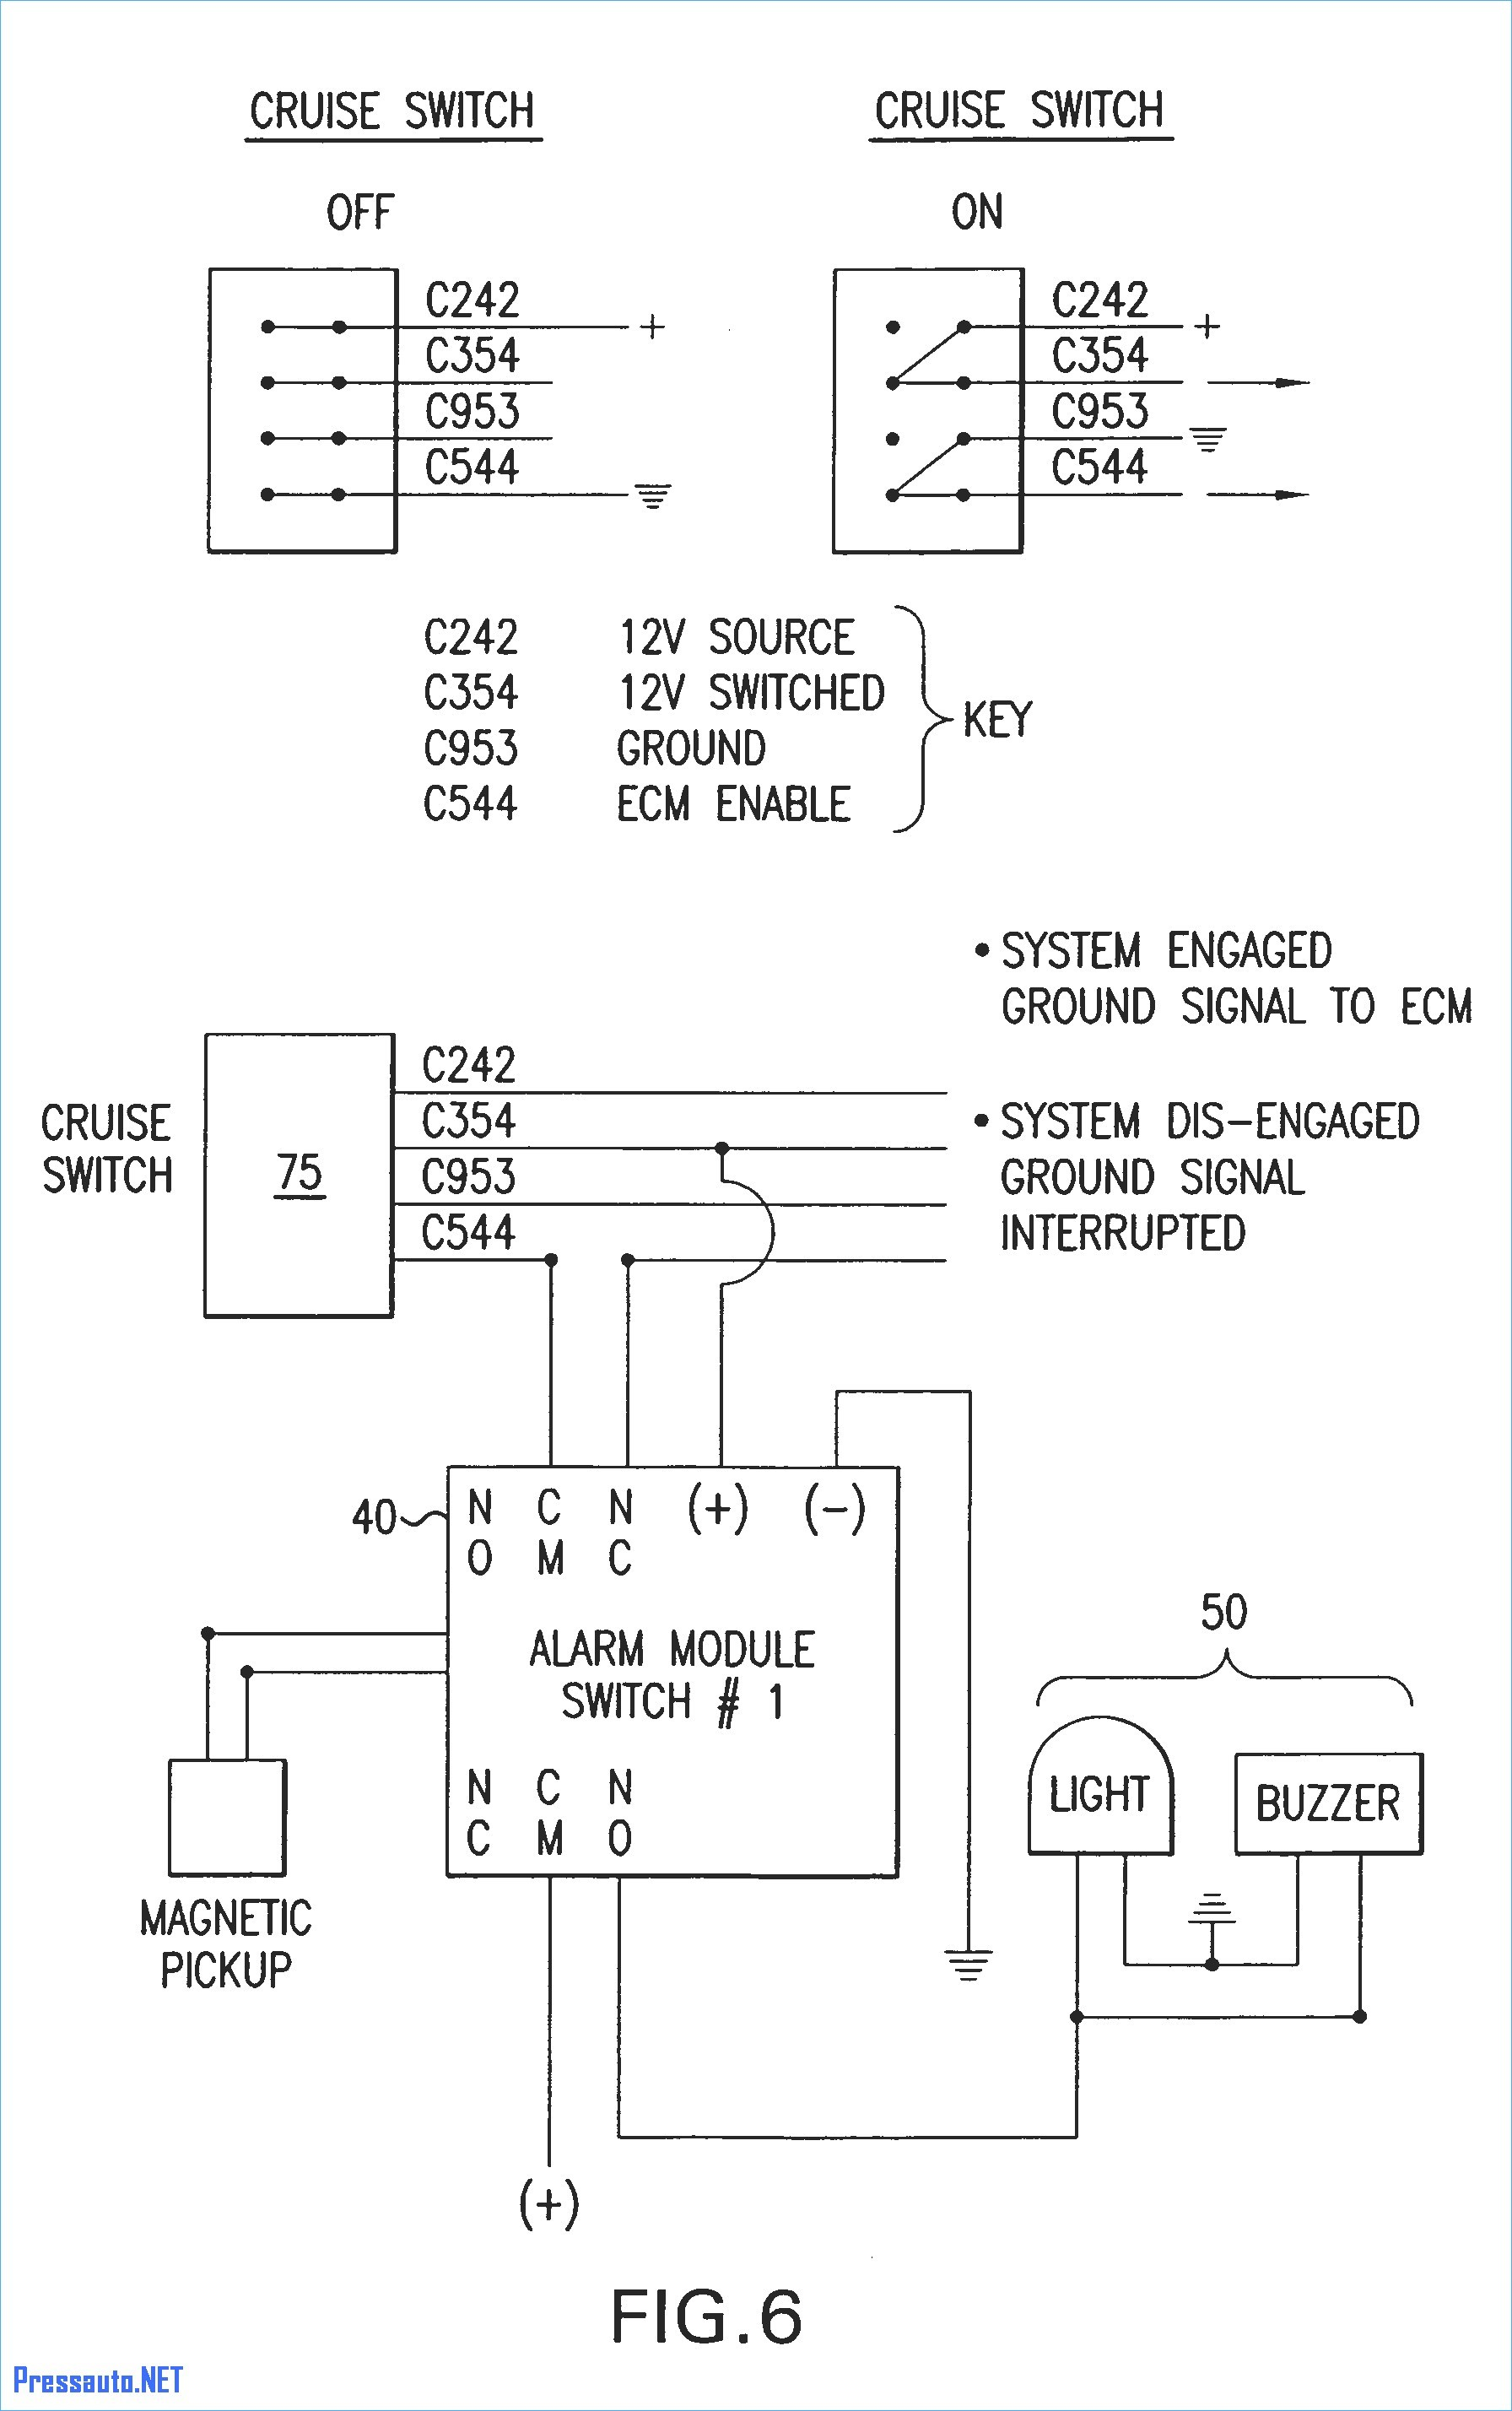 key switch wiring diagram for peterbilt 379 wiring  peterbilt 379 wiring injectors diagram #8